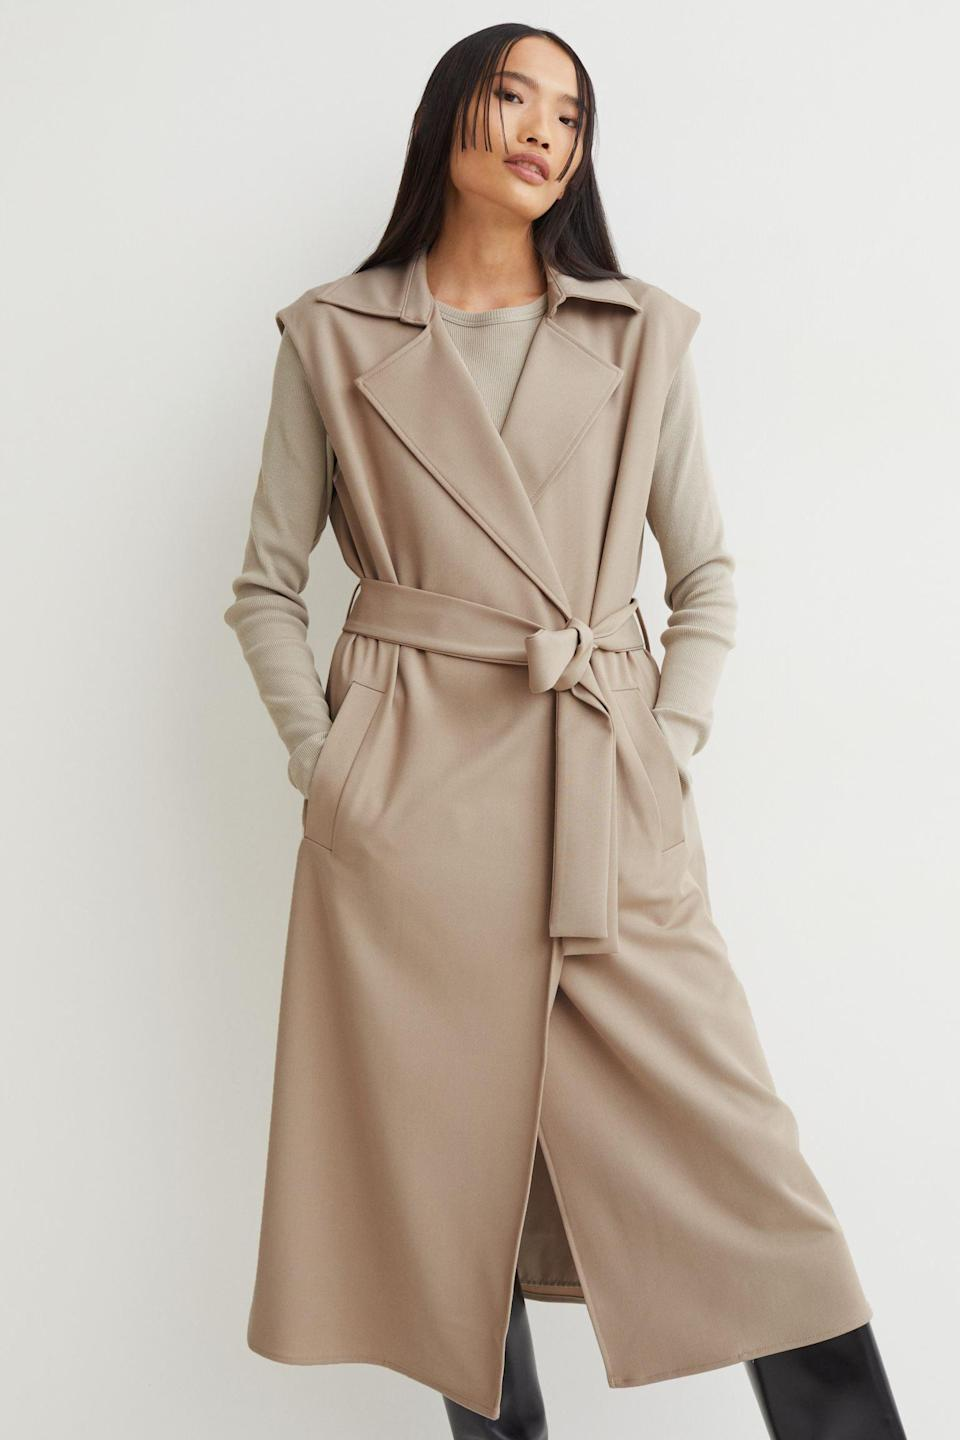 <p>This <span>Knee-length Jacket Dress</span> ($51, originally $60) will instantly elevate your coat collection with its unique sleeveless look but you can also style it over a long-sleeved tee as a dress. It's a great two-in-one piece you won't regret investing in.</p>